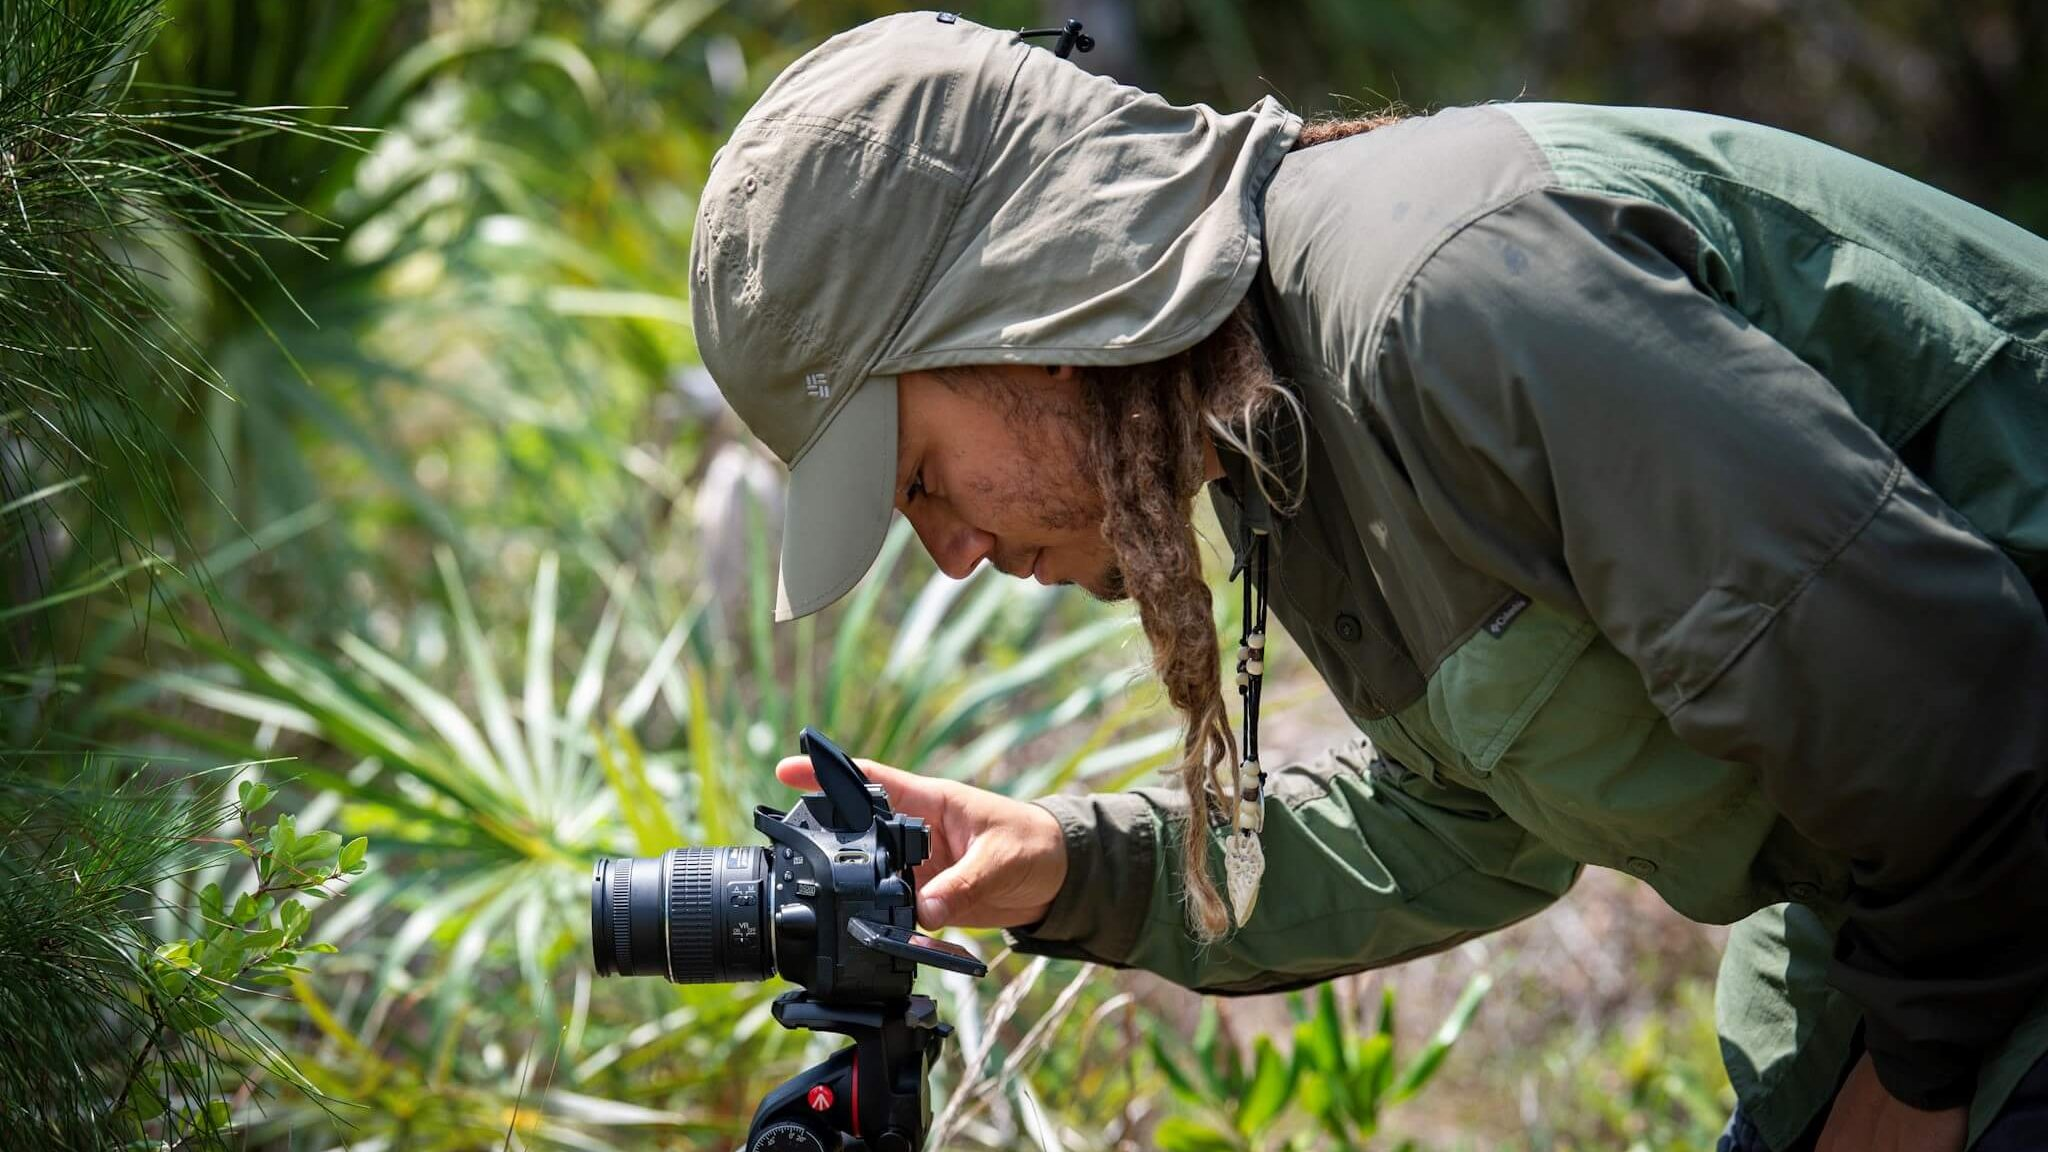 Photographer taking close-up pictures of Deering Estate's foliage.